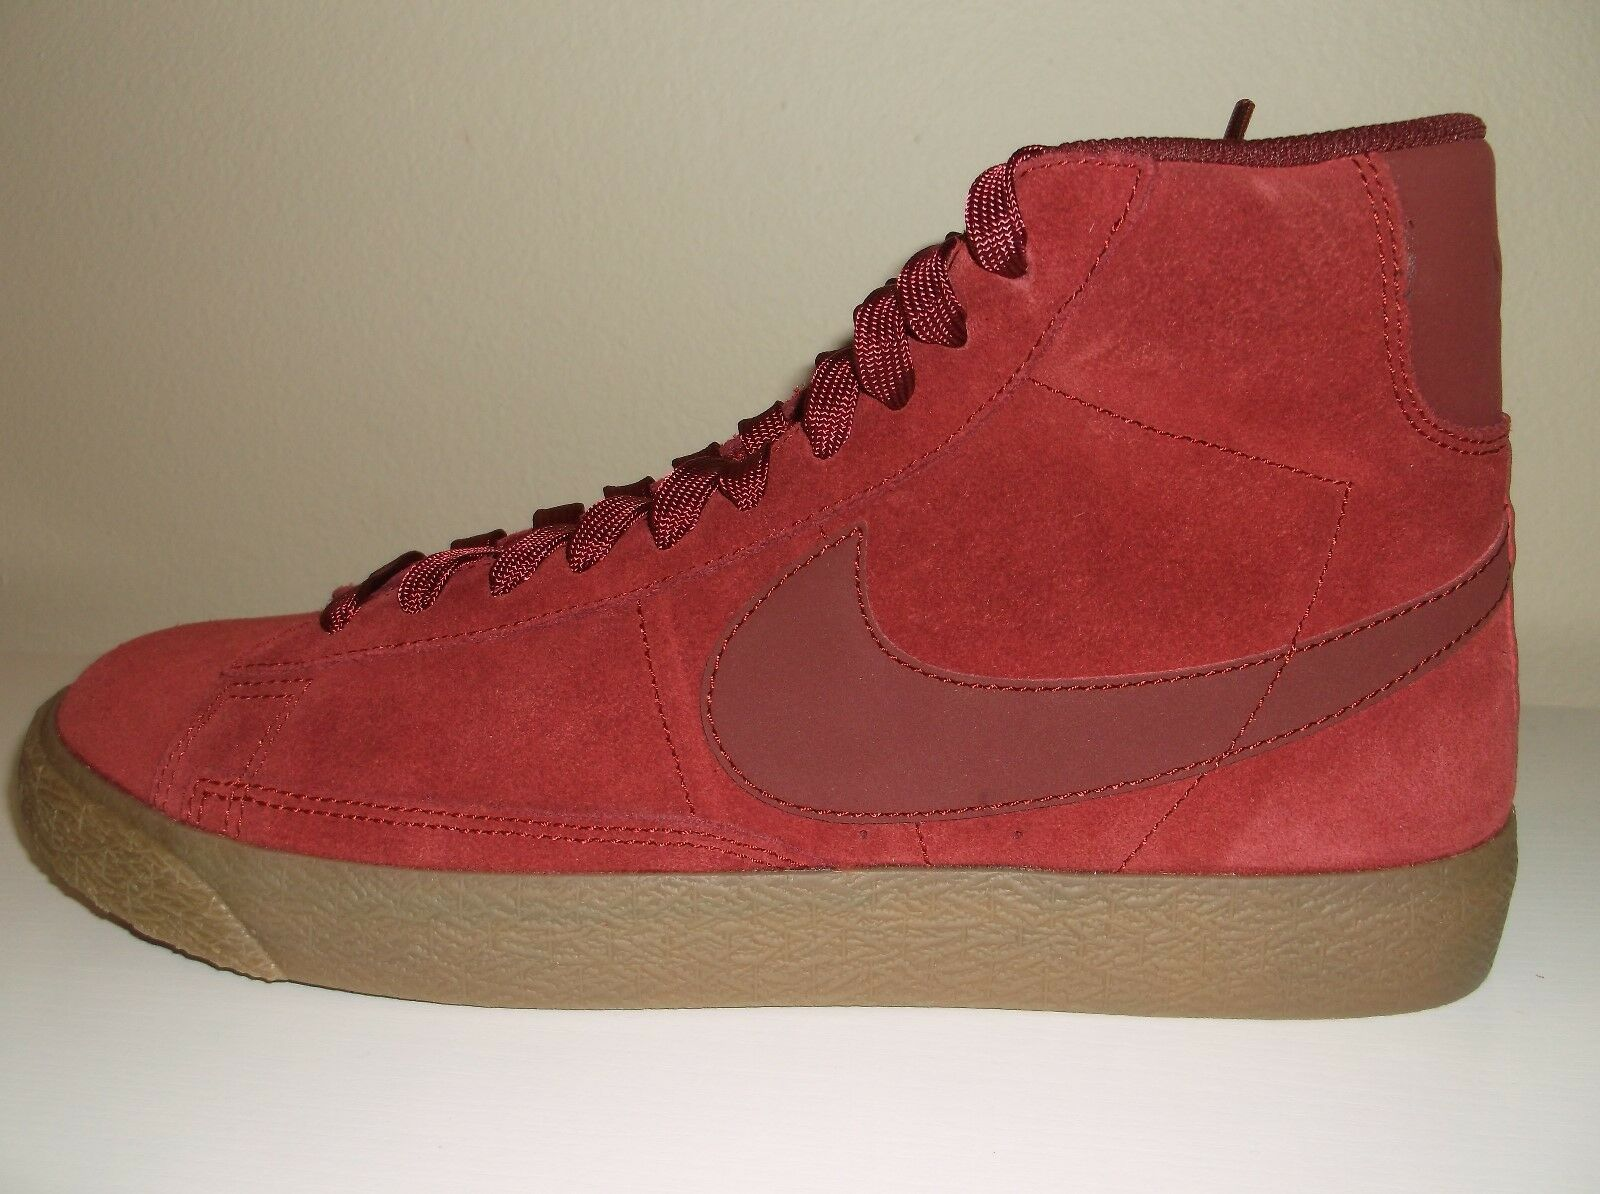 Nike Blazer Suede Sneakers Size Boys 7 New Free Shipping